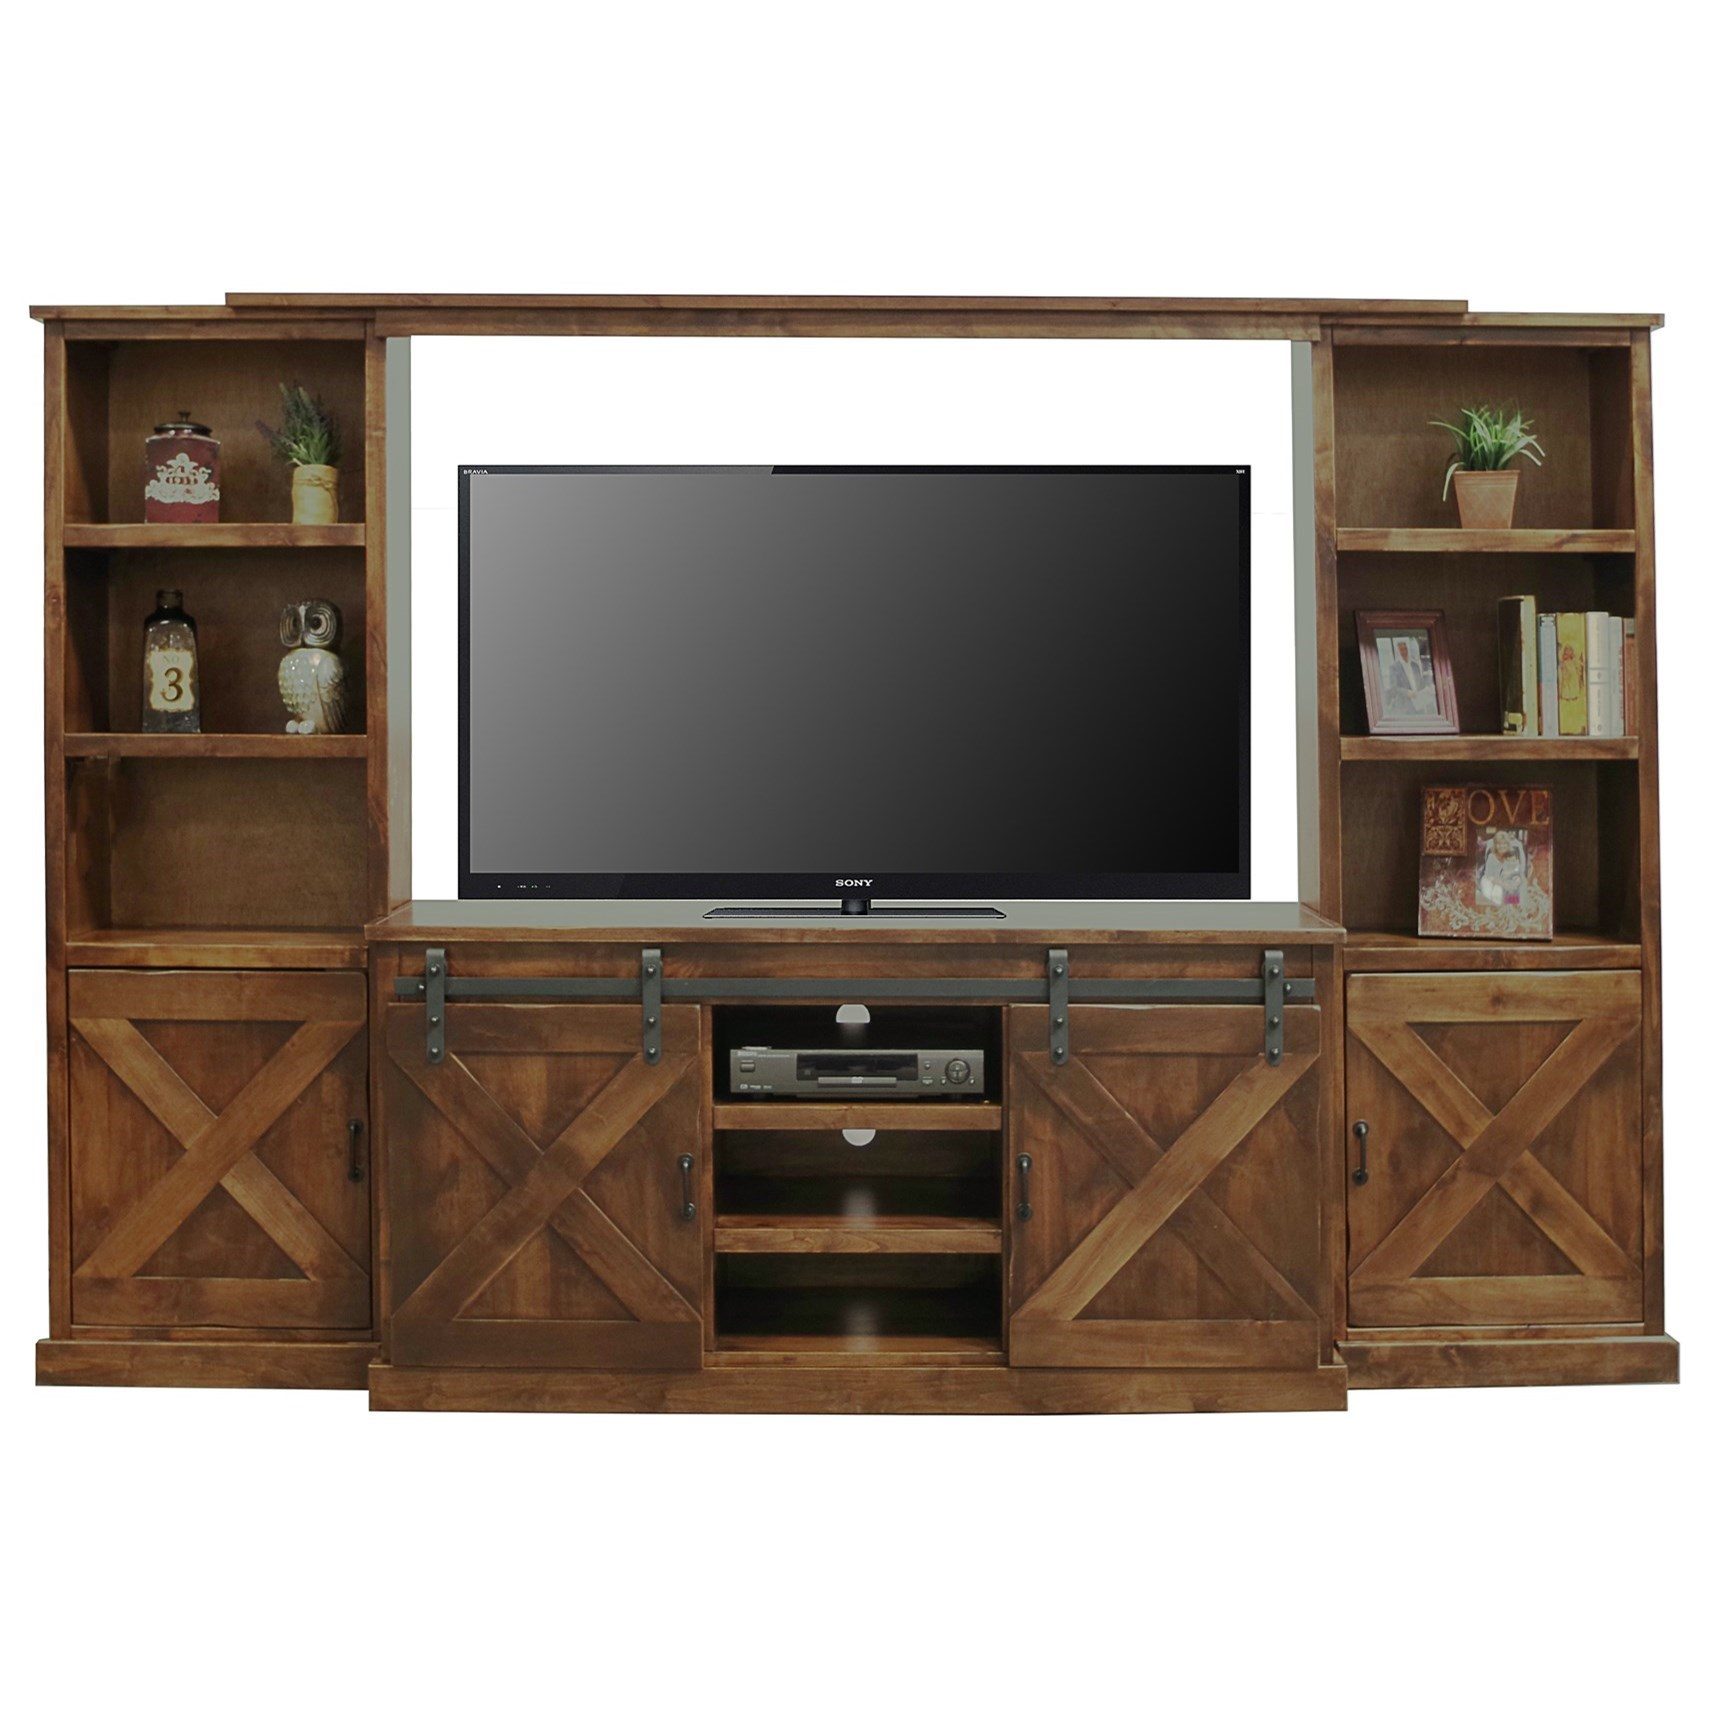 Large Wall Units For Living Room Farmhouse Collection Rustic Entertainment Wall Unit With Sliding Doors By Legends Furniture At Goffena Furniture Mattress Center